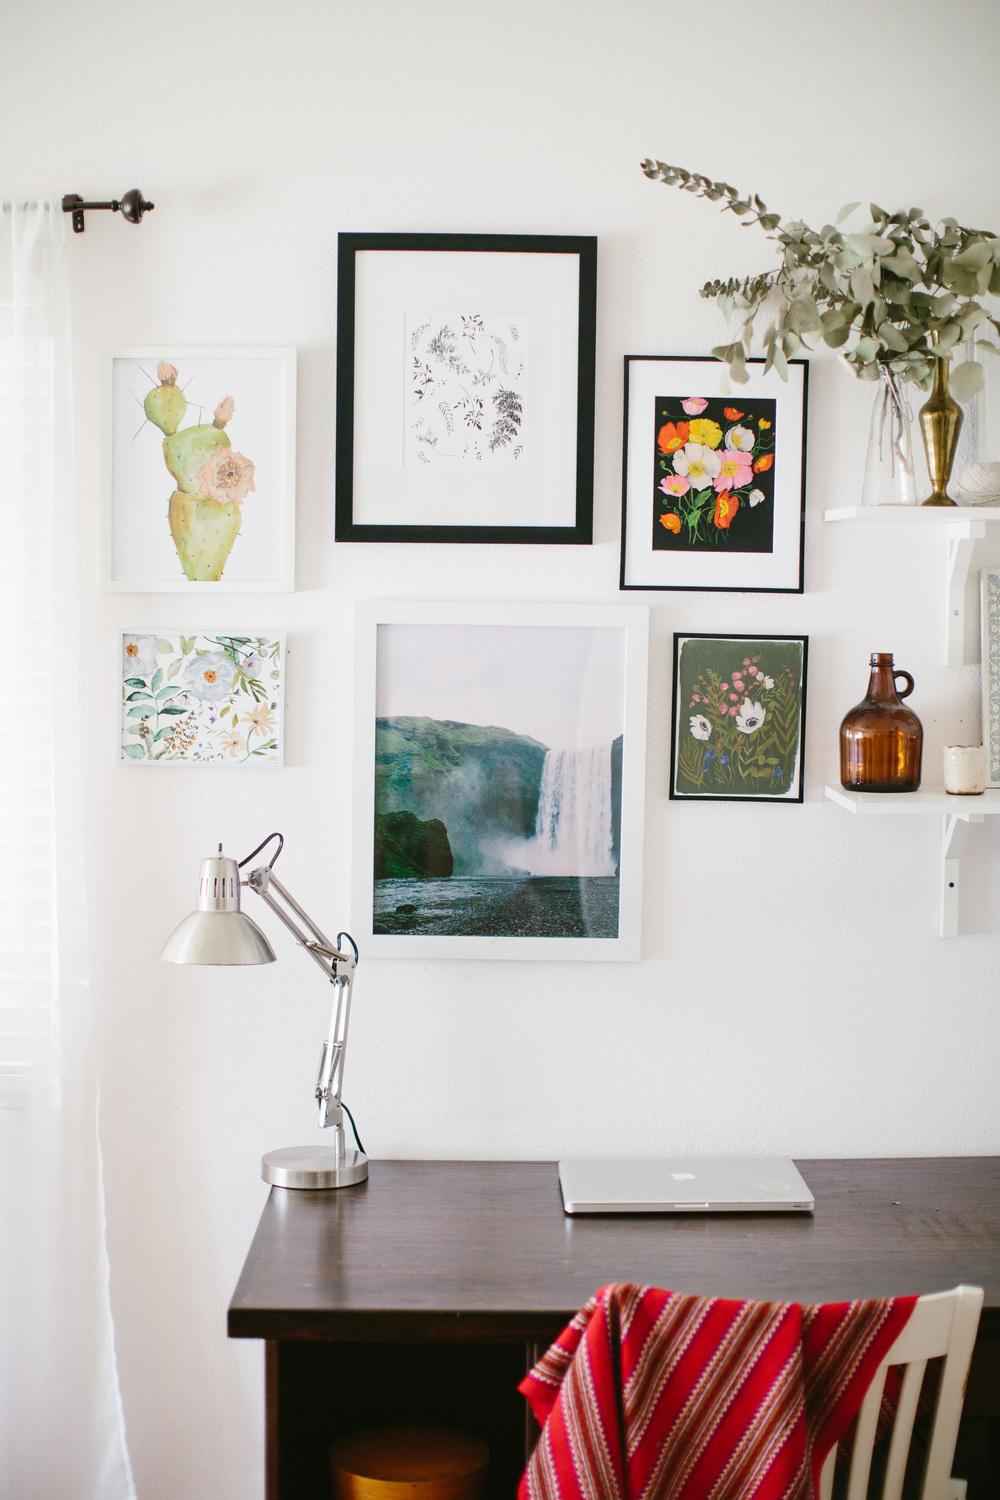 Bedroom decor inspiration | Florida living | Bohemian styling | The School of Styling - http://www.theschoolofstyling.com